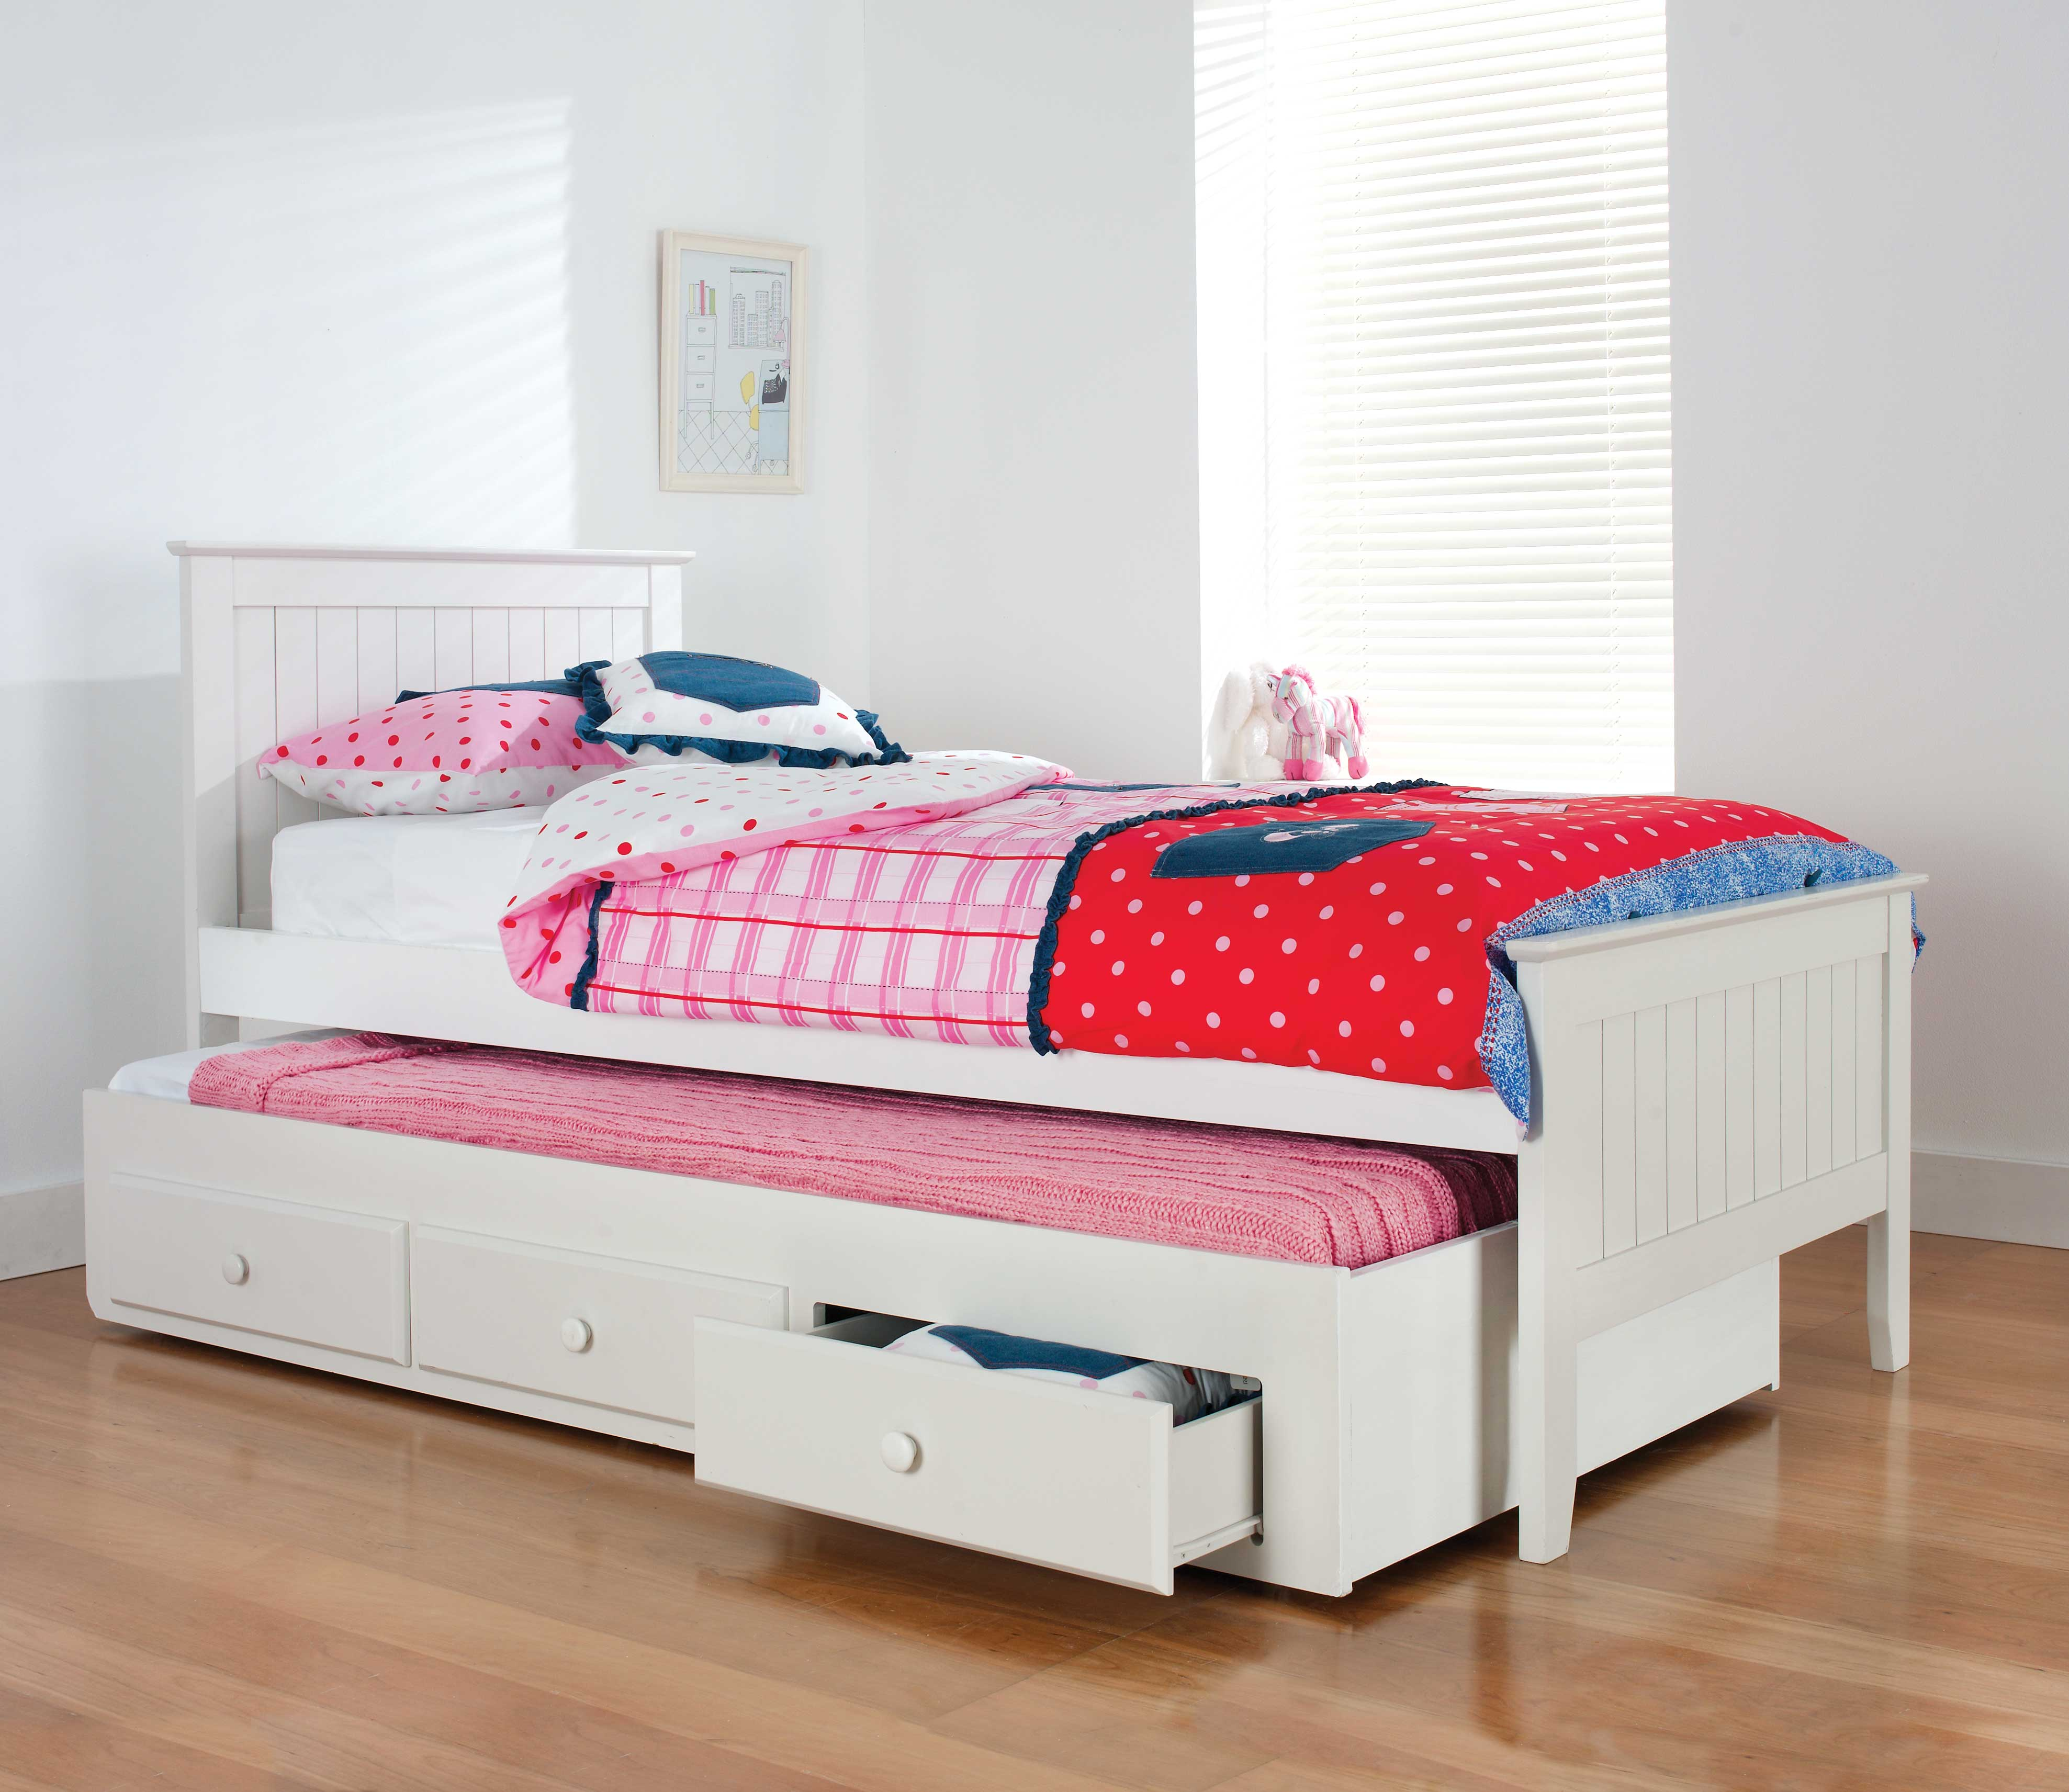 alaska bed frame w trundle white bedroom furniture 17073 | alaska single bed with trundle width 3954 height 3425 ext width 1155